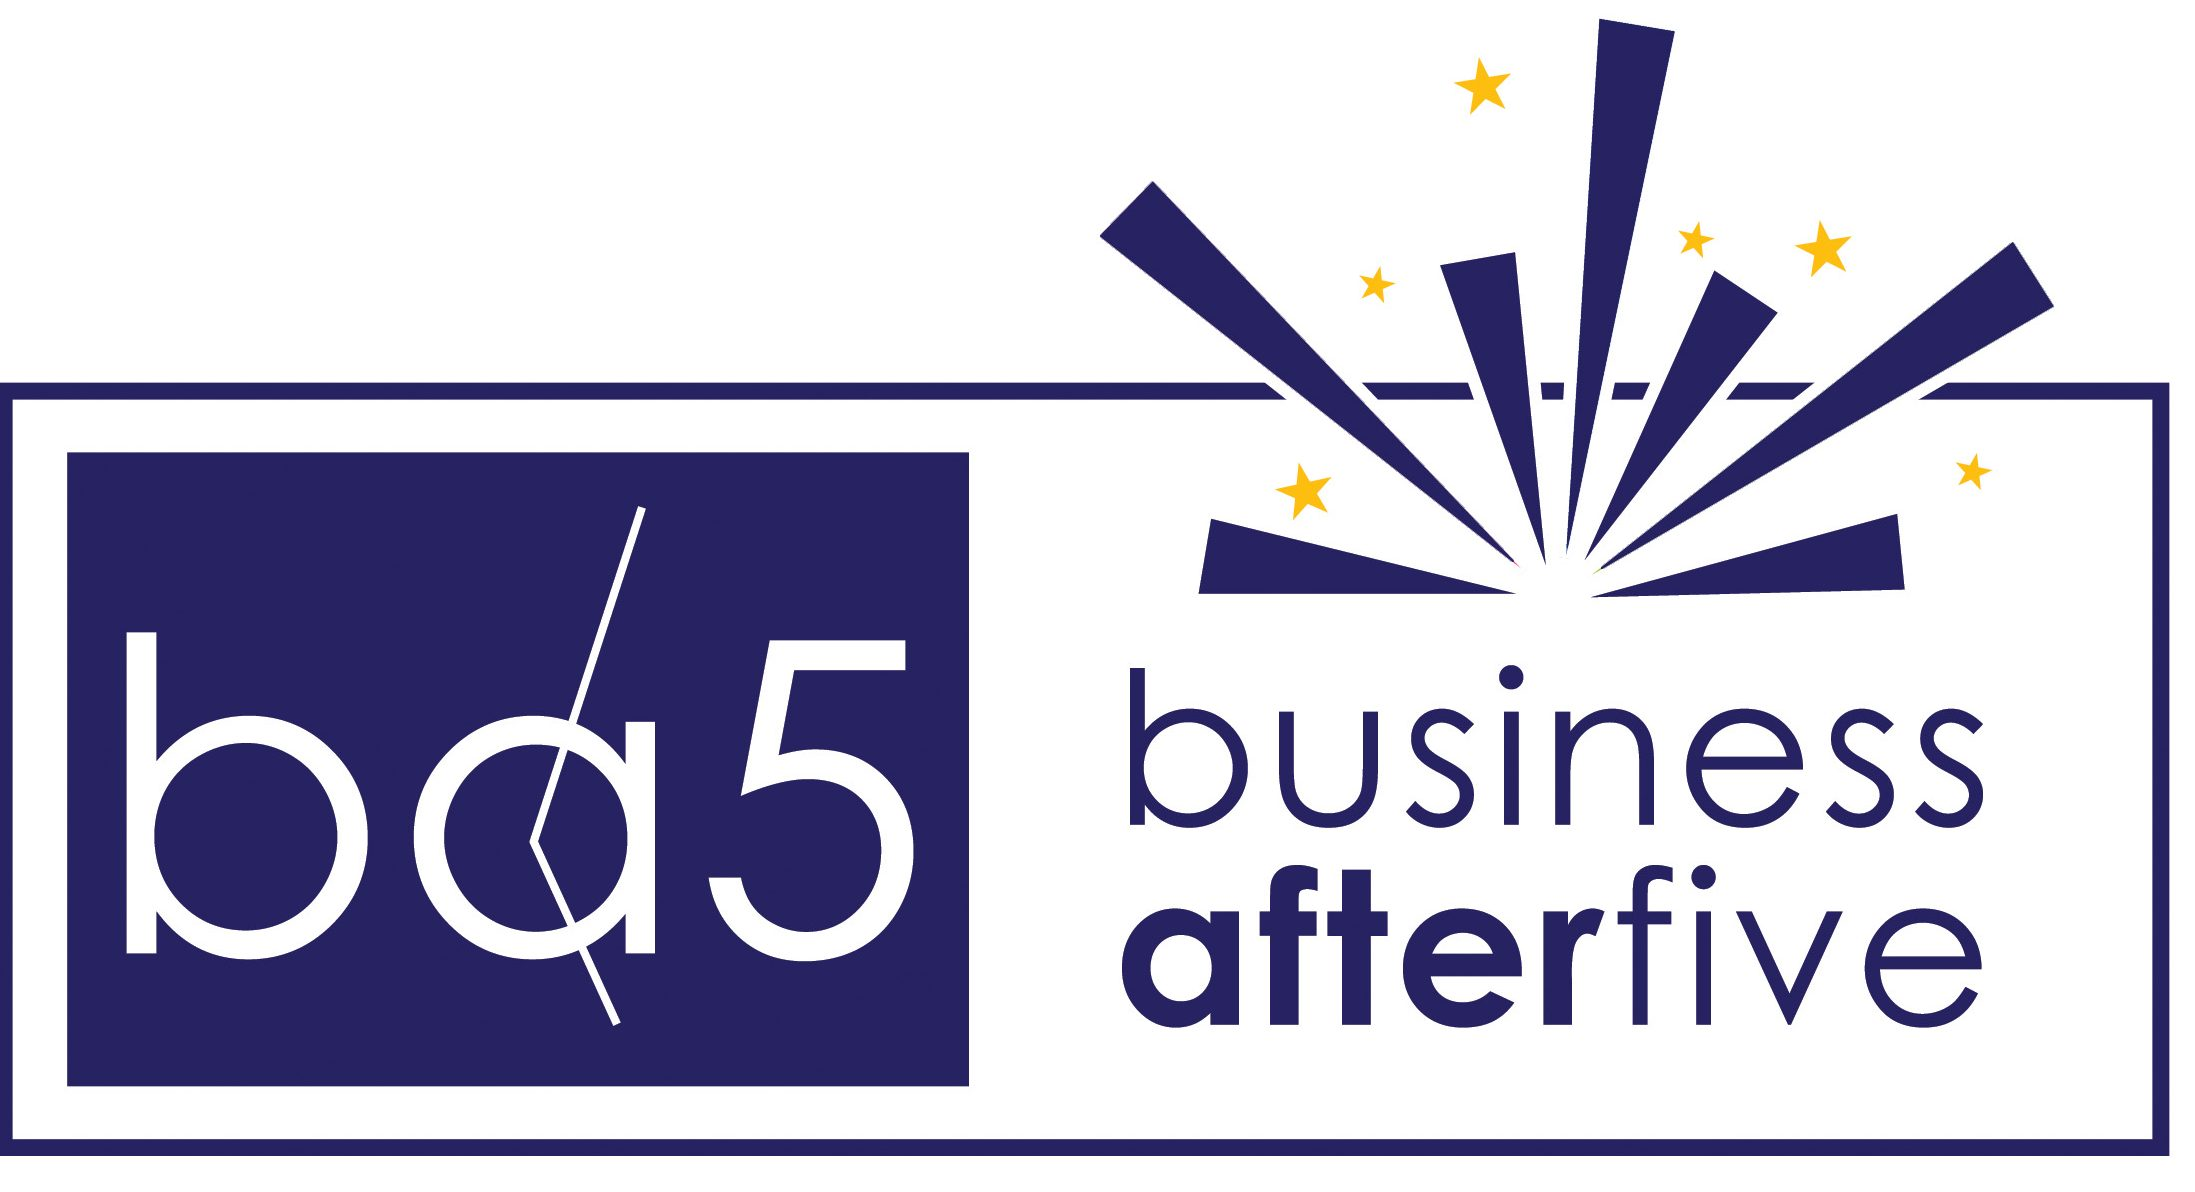 August Business After 5